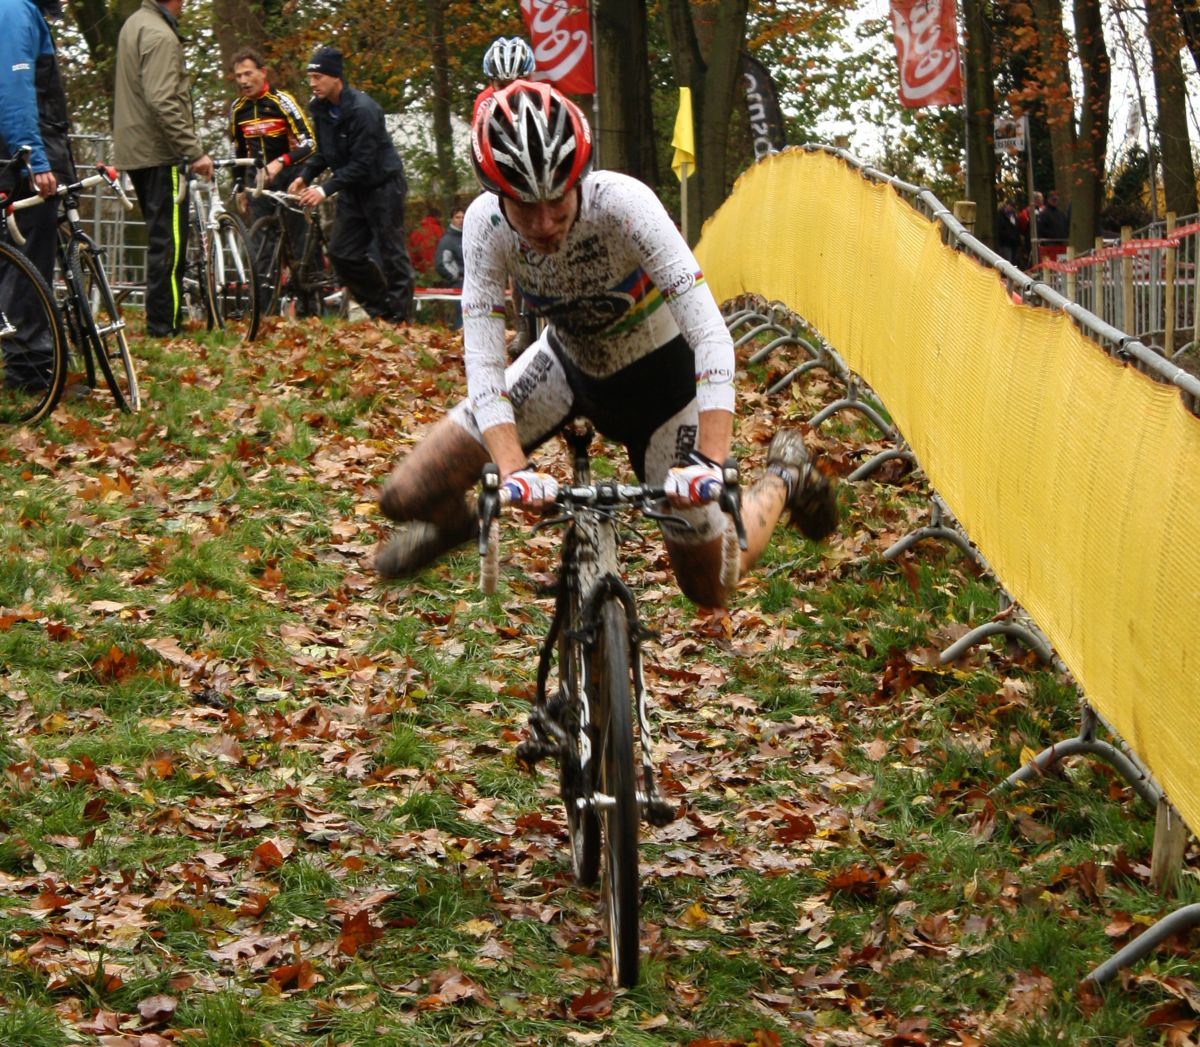 Vos remounts after a trip through the pits. ? Dan Seaton